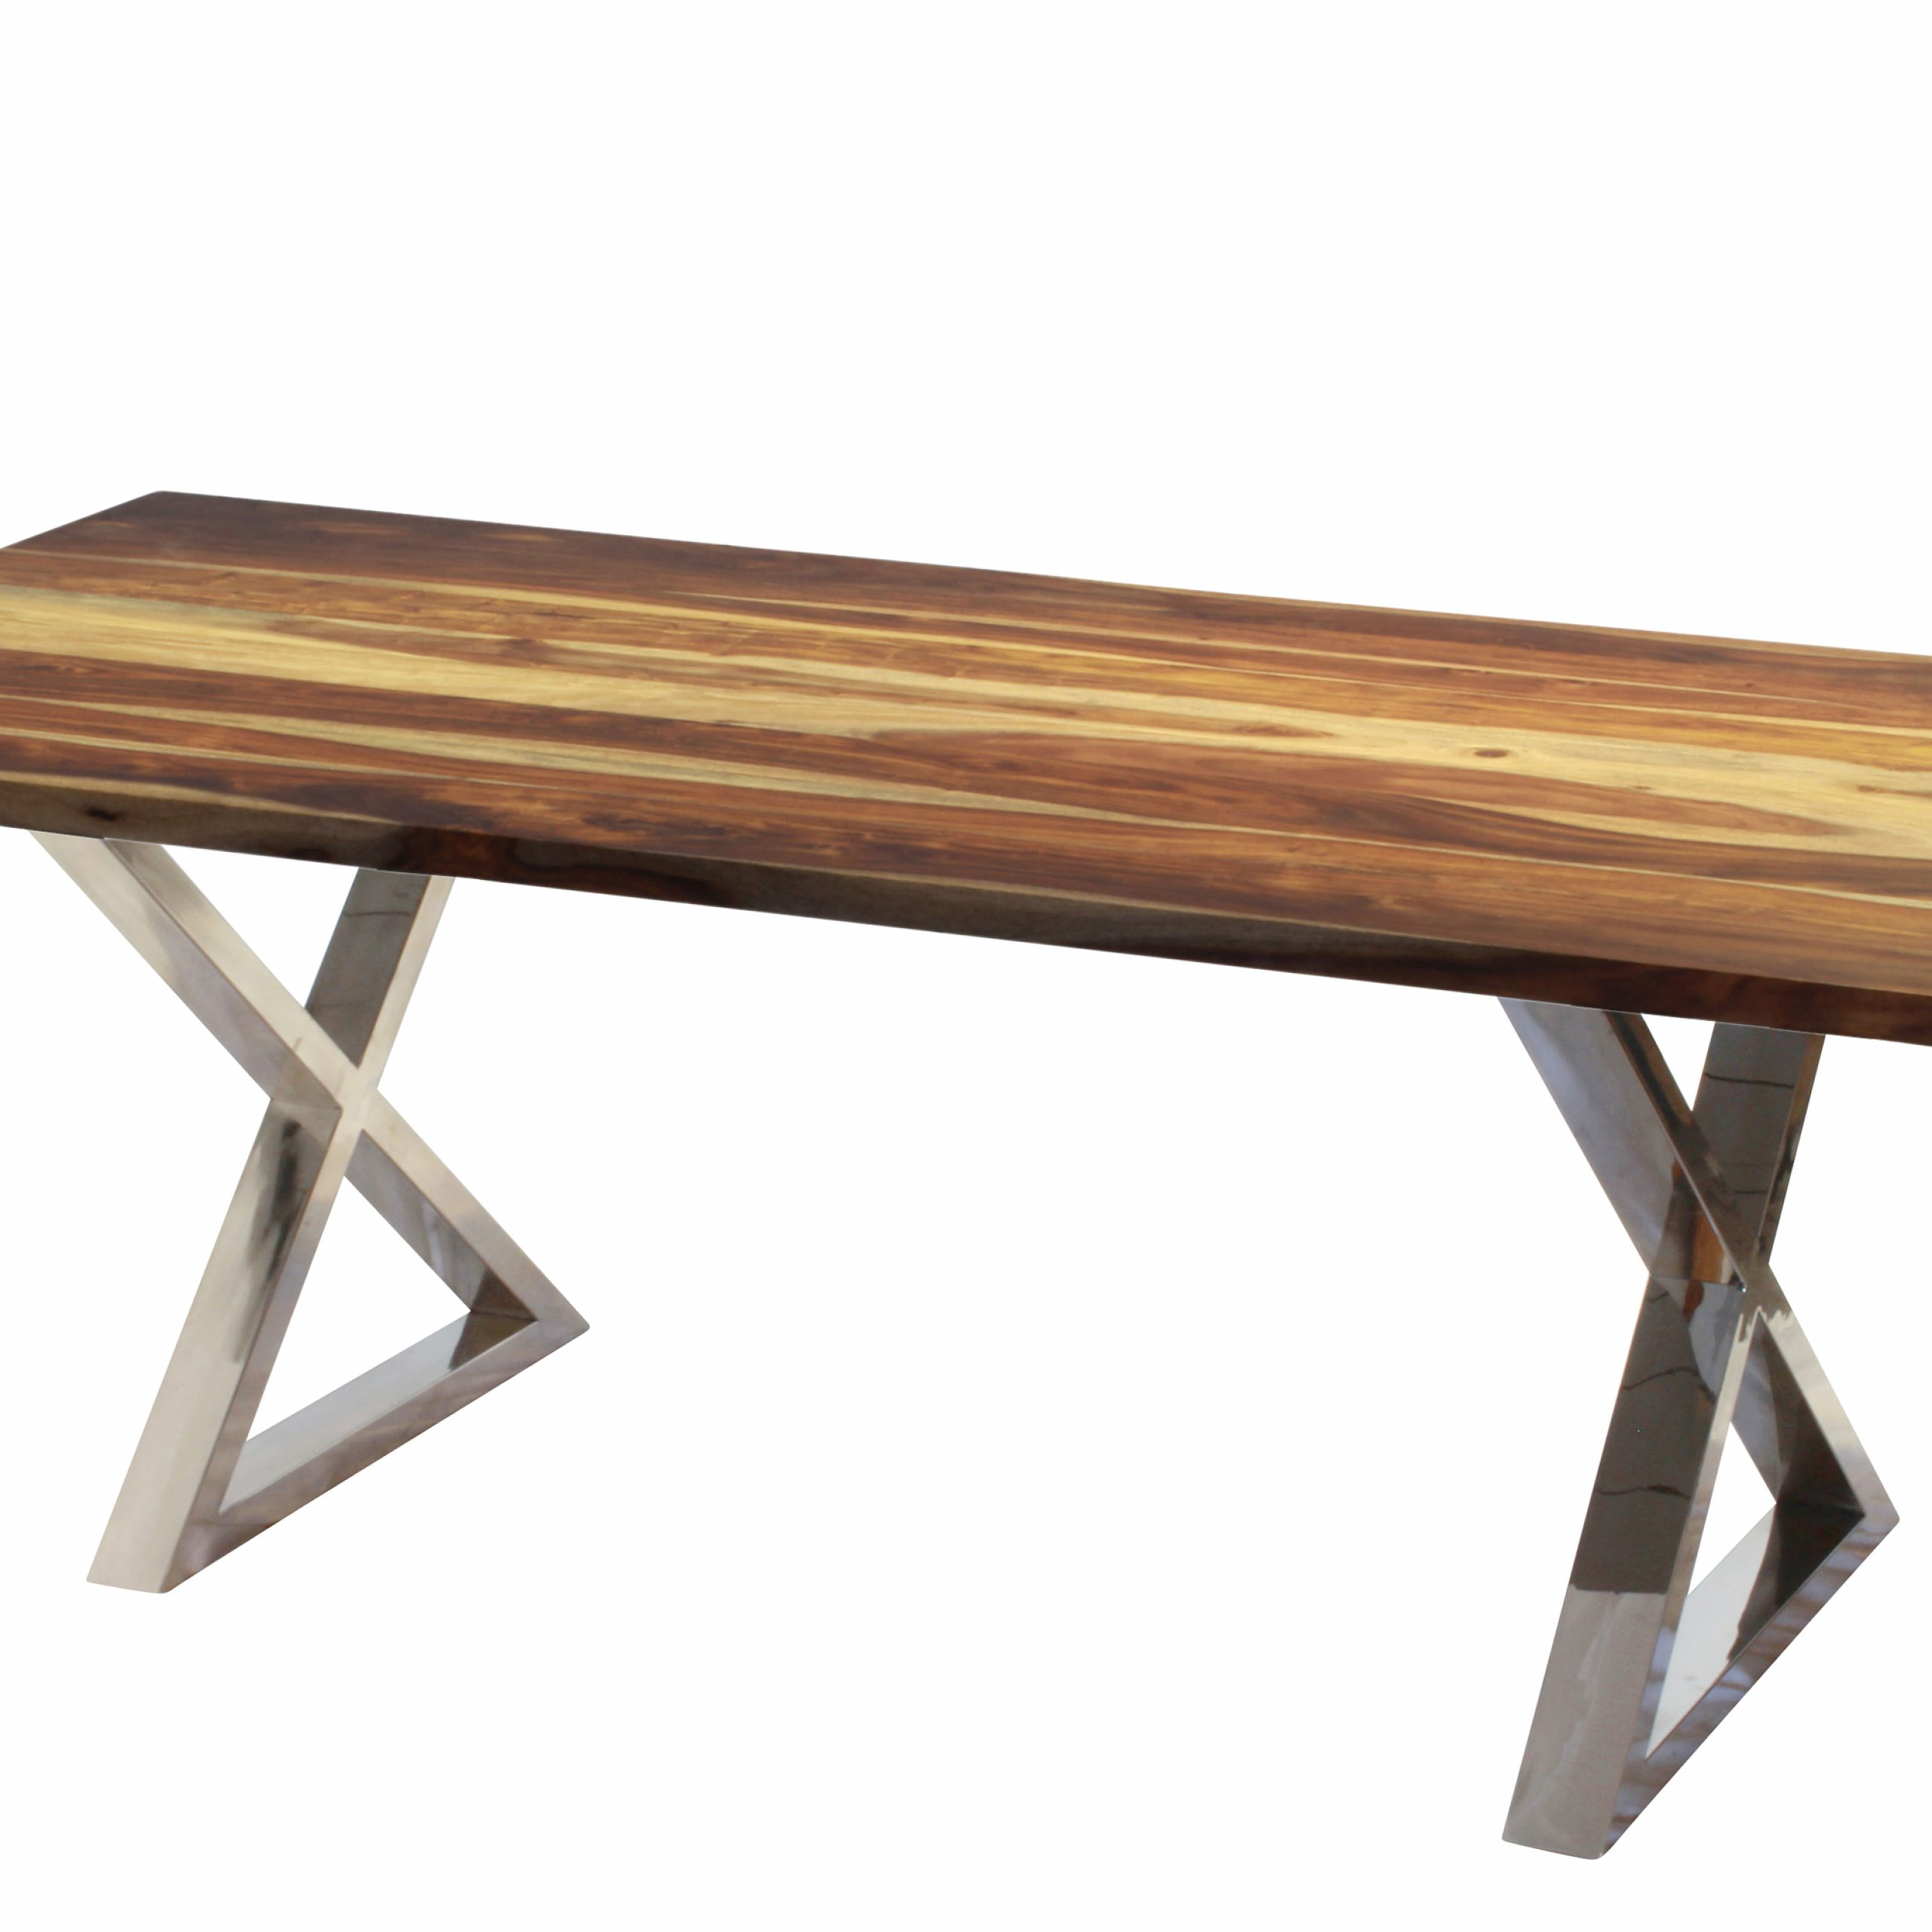 "Preferred Acacia Dining Tables With Black Rocket Legs With Regard To Corcoran Acacia Live Edge Dining Table With Black Rocket Legs – 72"" (View 6 of 30)"